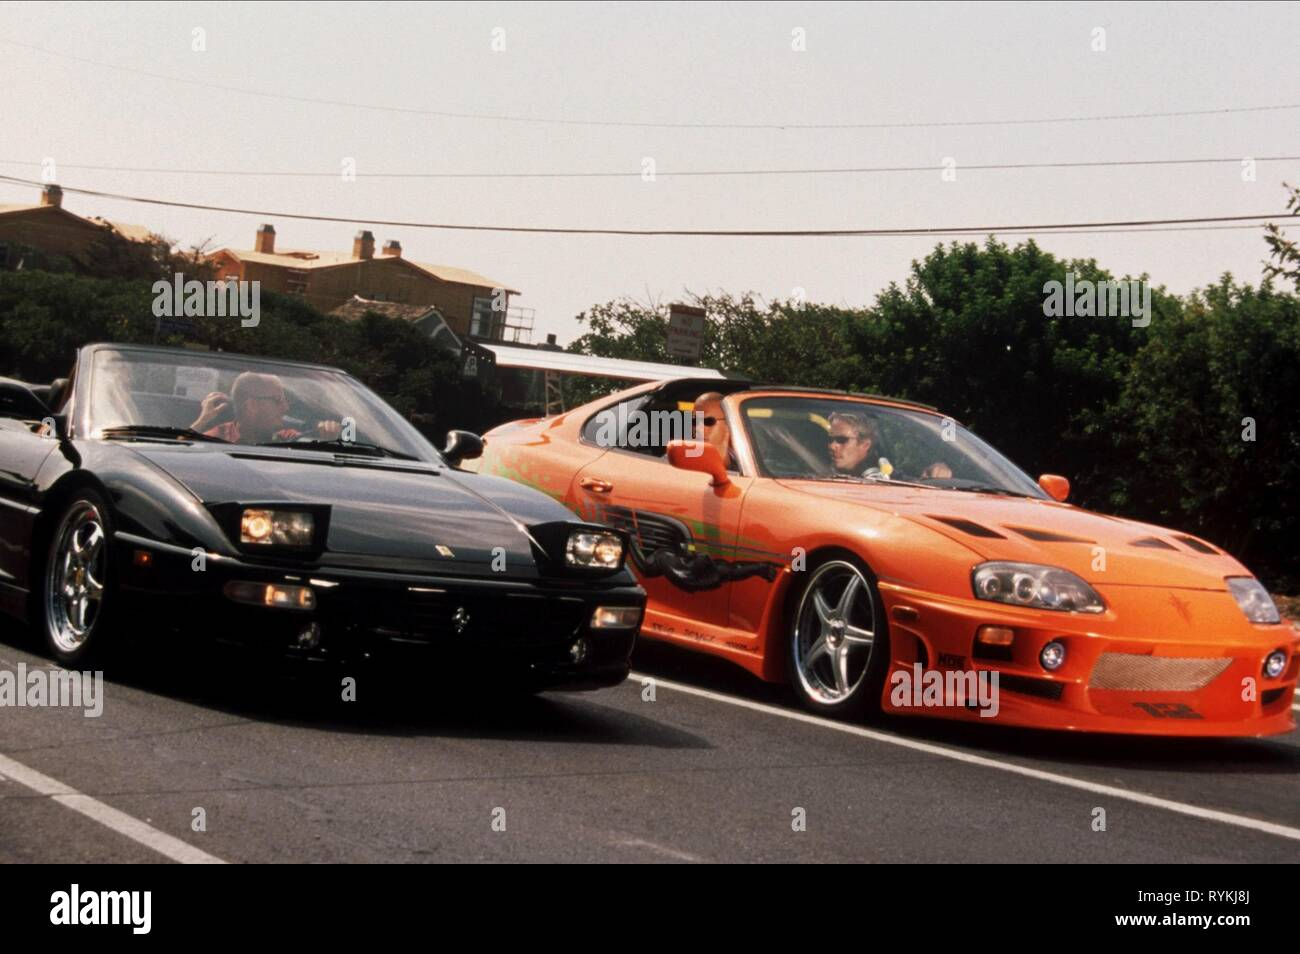 DIESEL,WALKER, THE FAST AND THE FURIOUS, 2001 - Stock Image